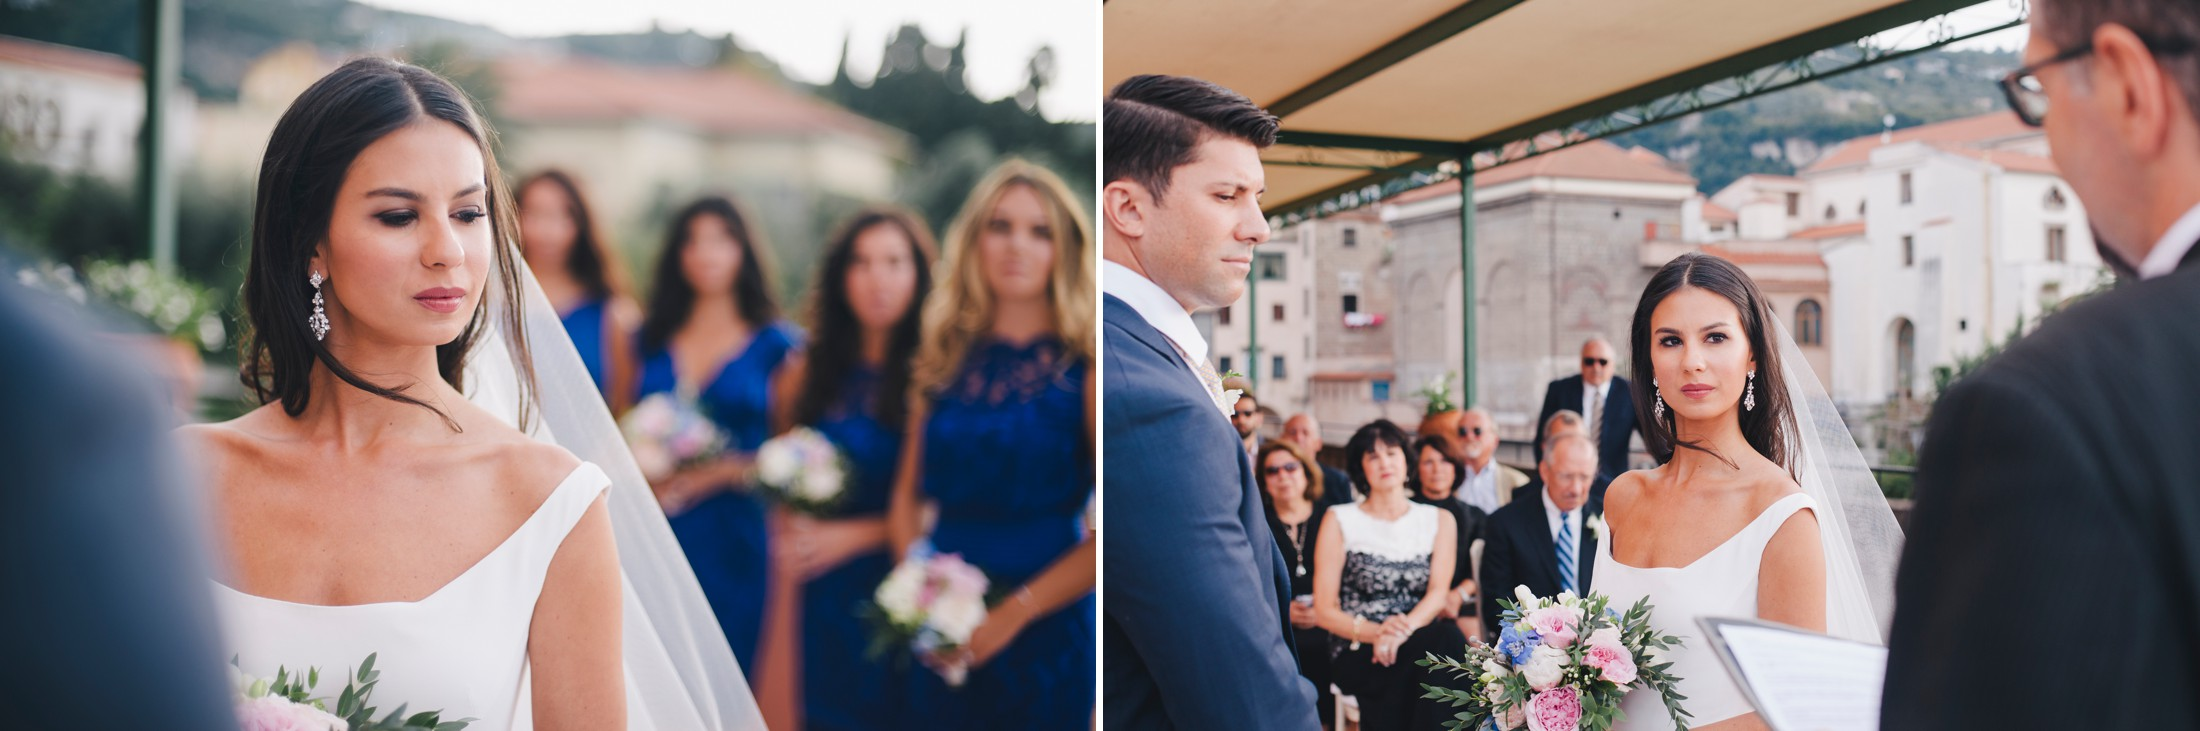 wedding in sorrento collage the bride and the groom during the wedding ceremony